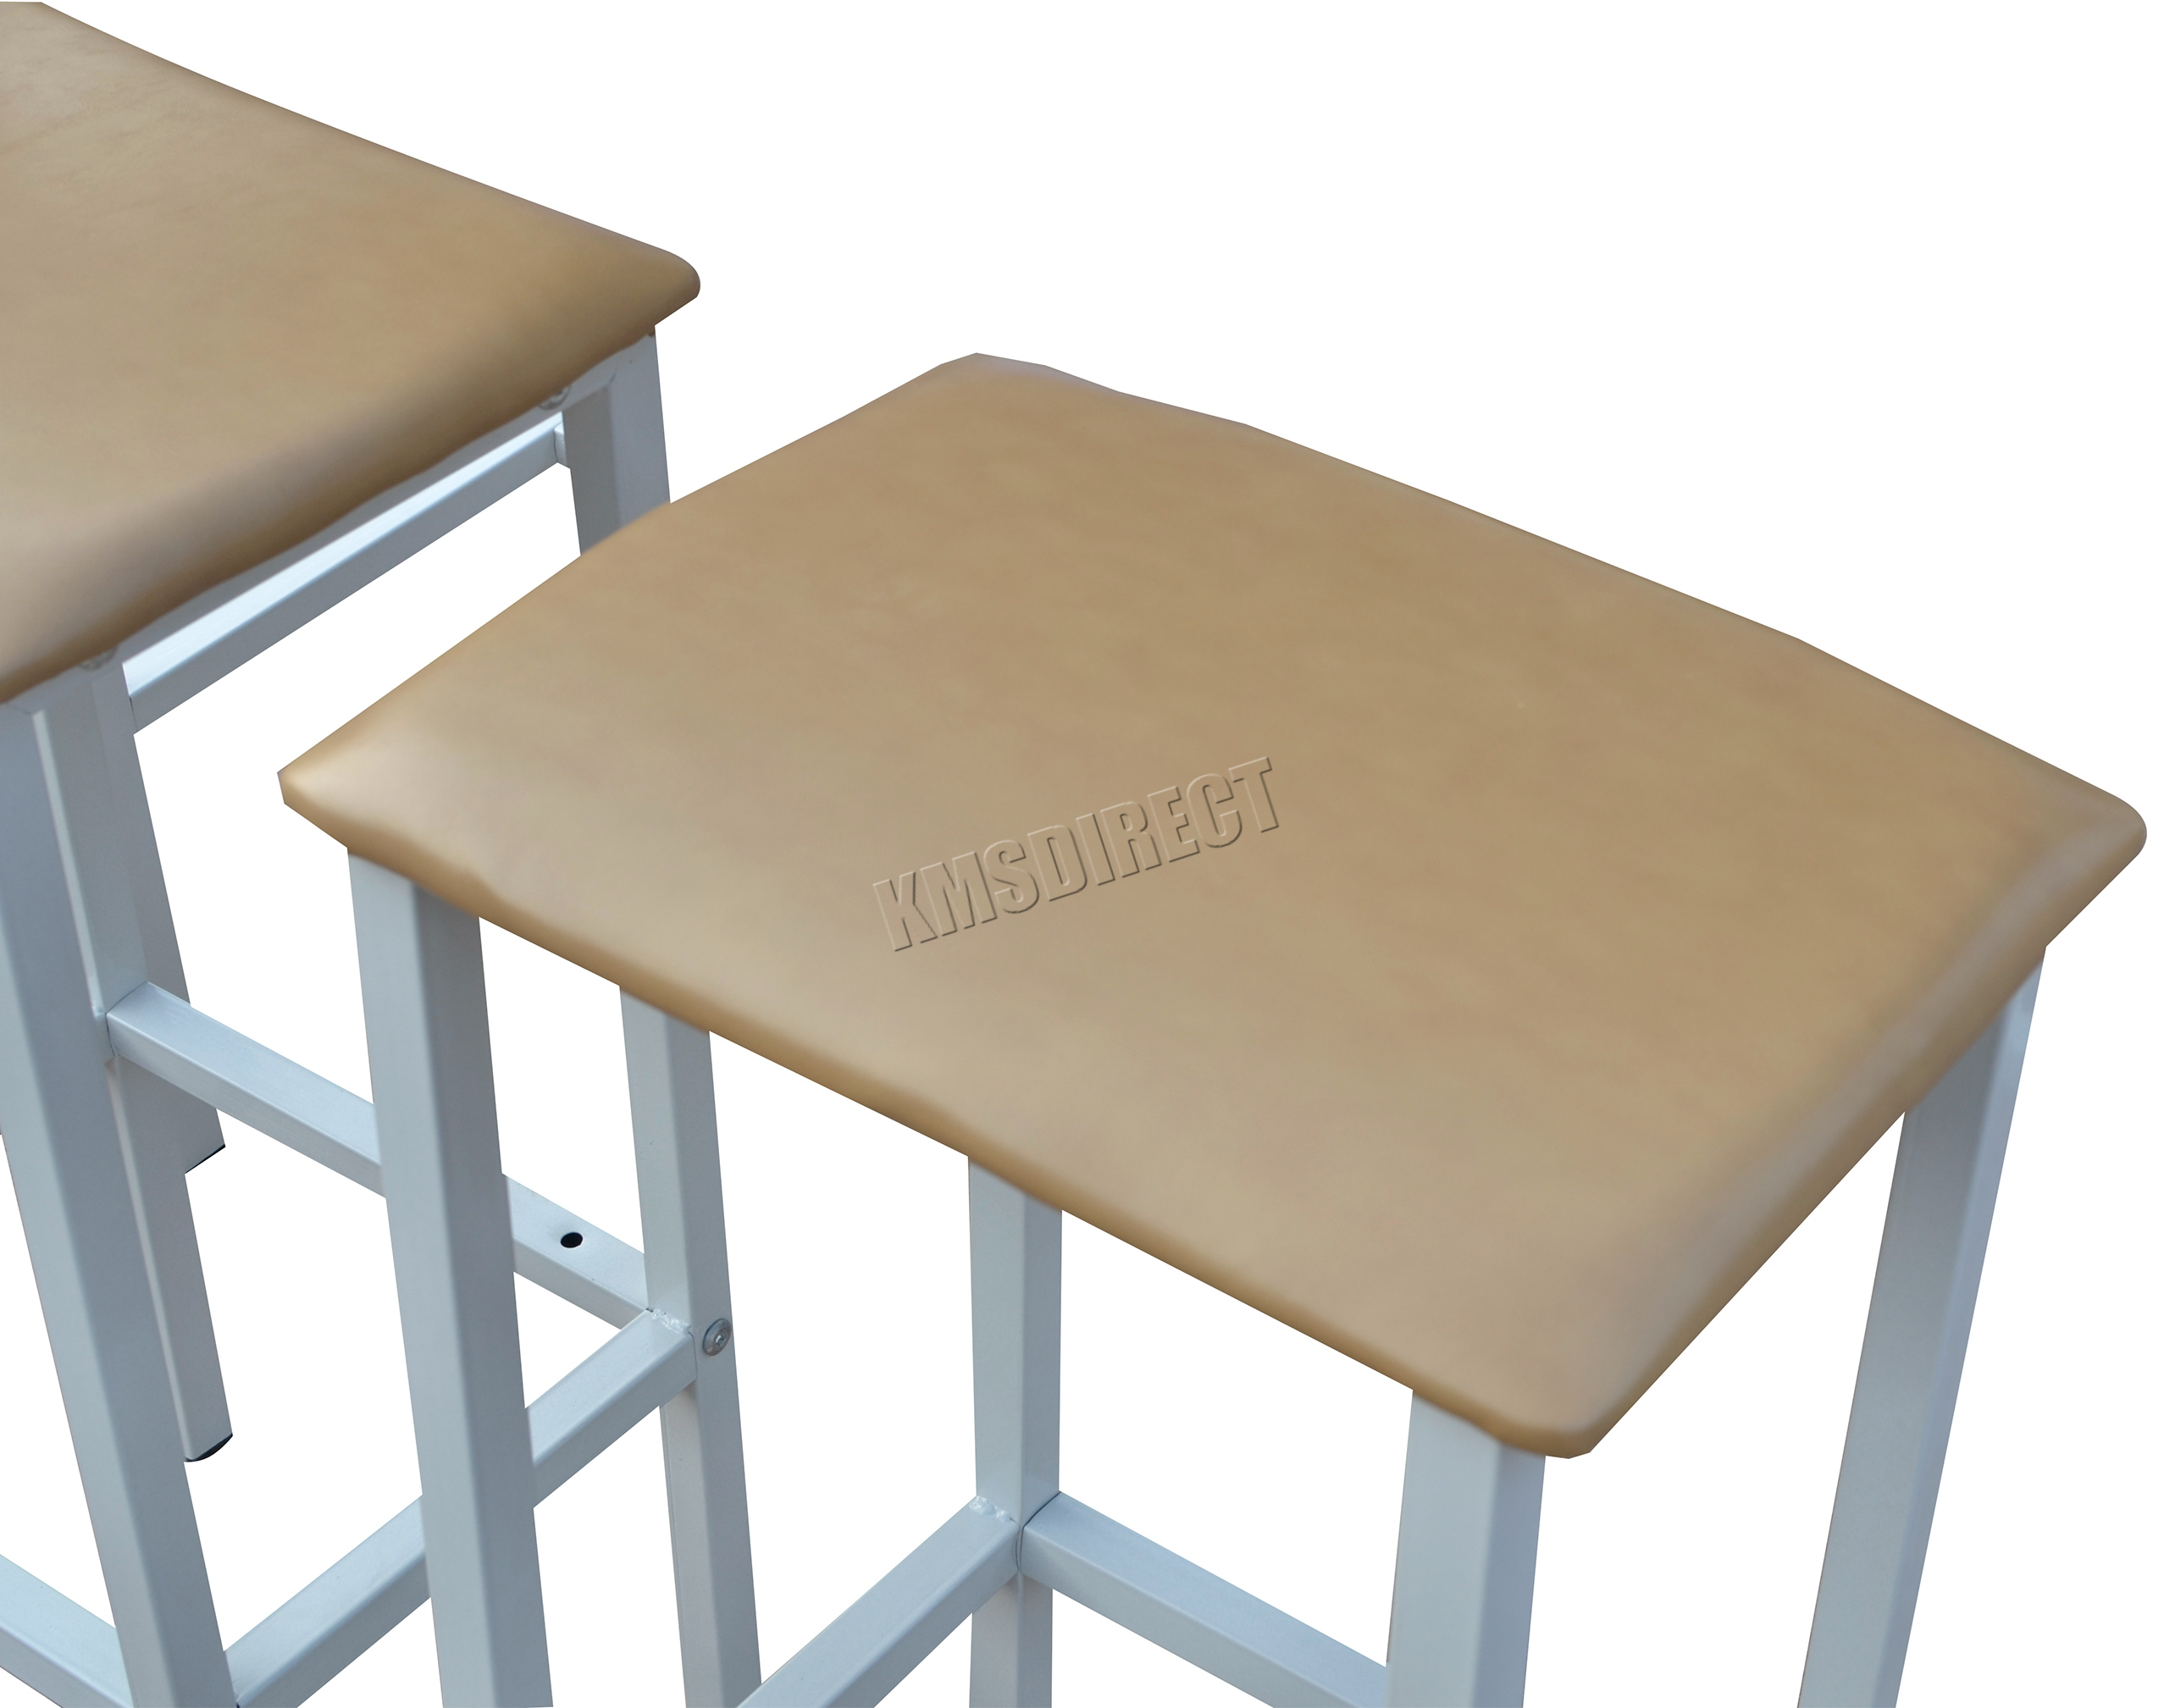 Cosmetic damaged westwood bar breakfast dining table stools chairs